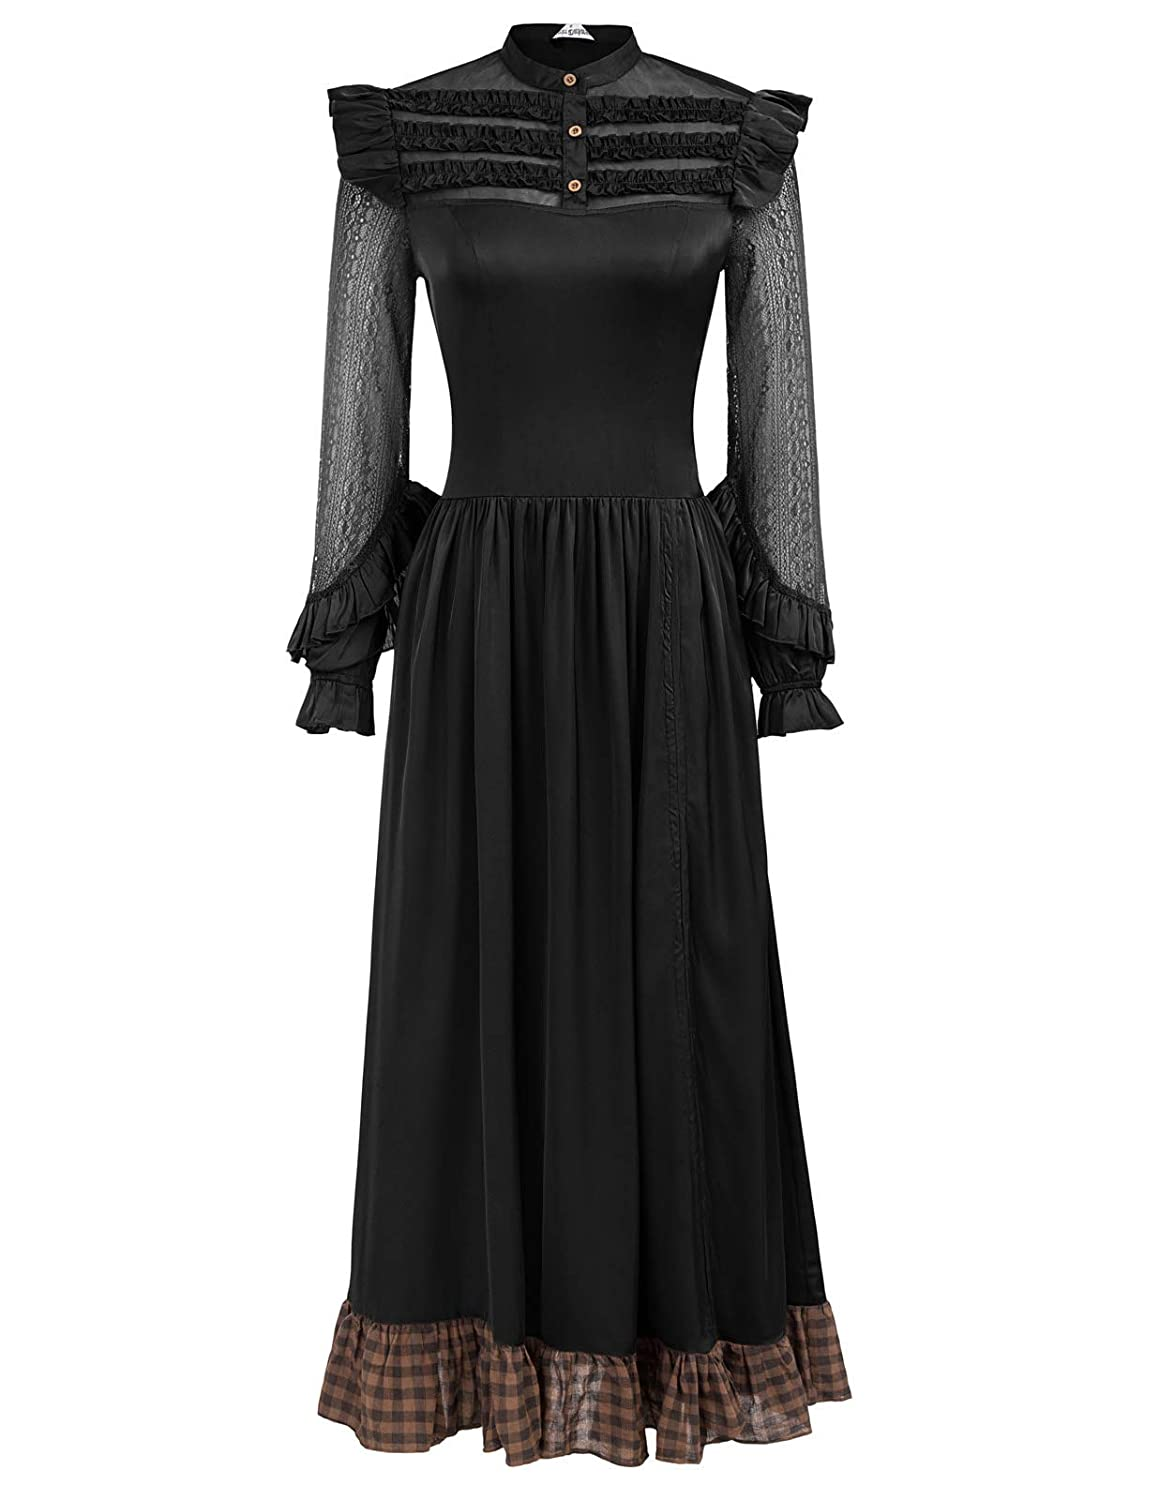 Victorian Dresses | Victorian Ballgowns | Victorian Clothing SCARLET DARKNESS Womens Victorian Renaissance Costume Adjustable Ruffle Dresses $29.99 AT vintagedancer.com